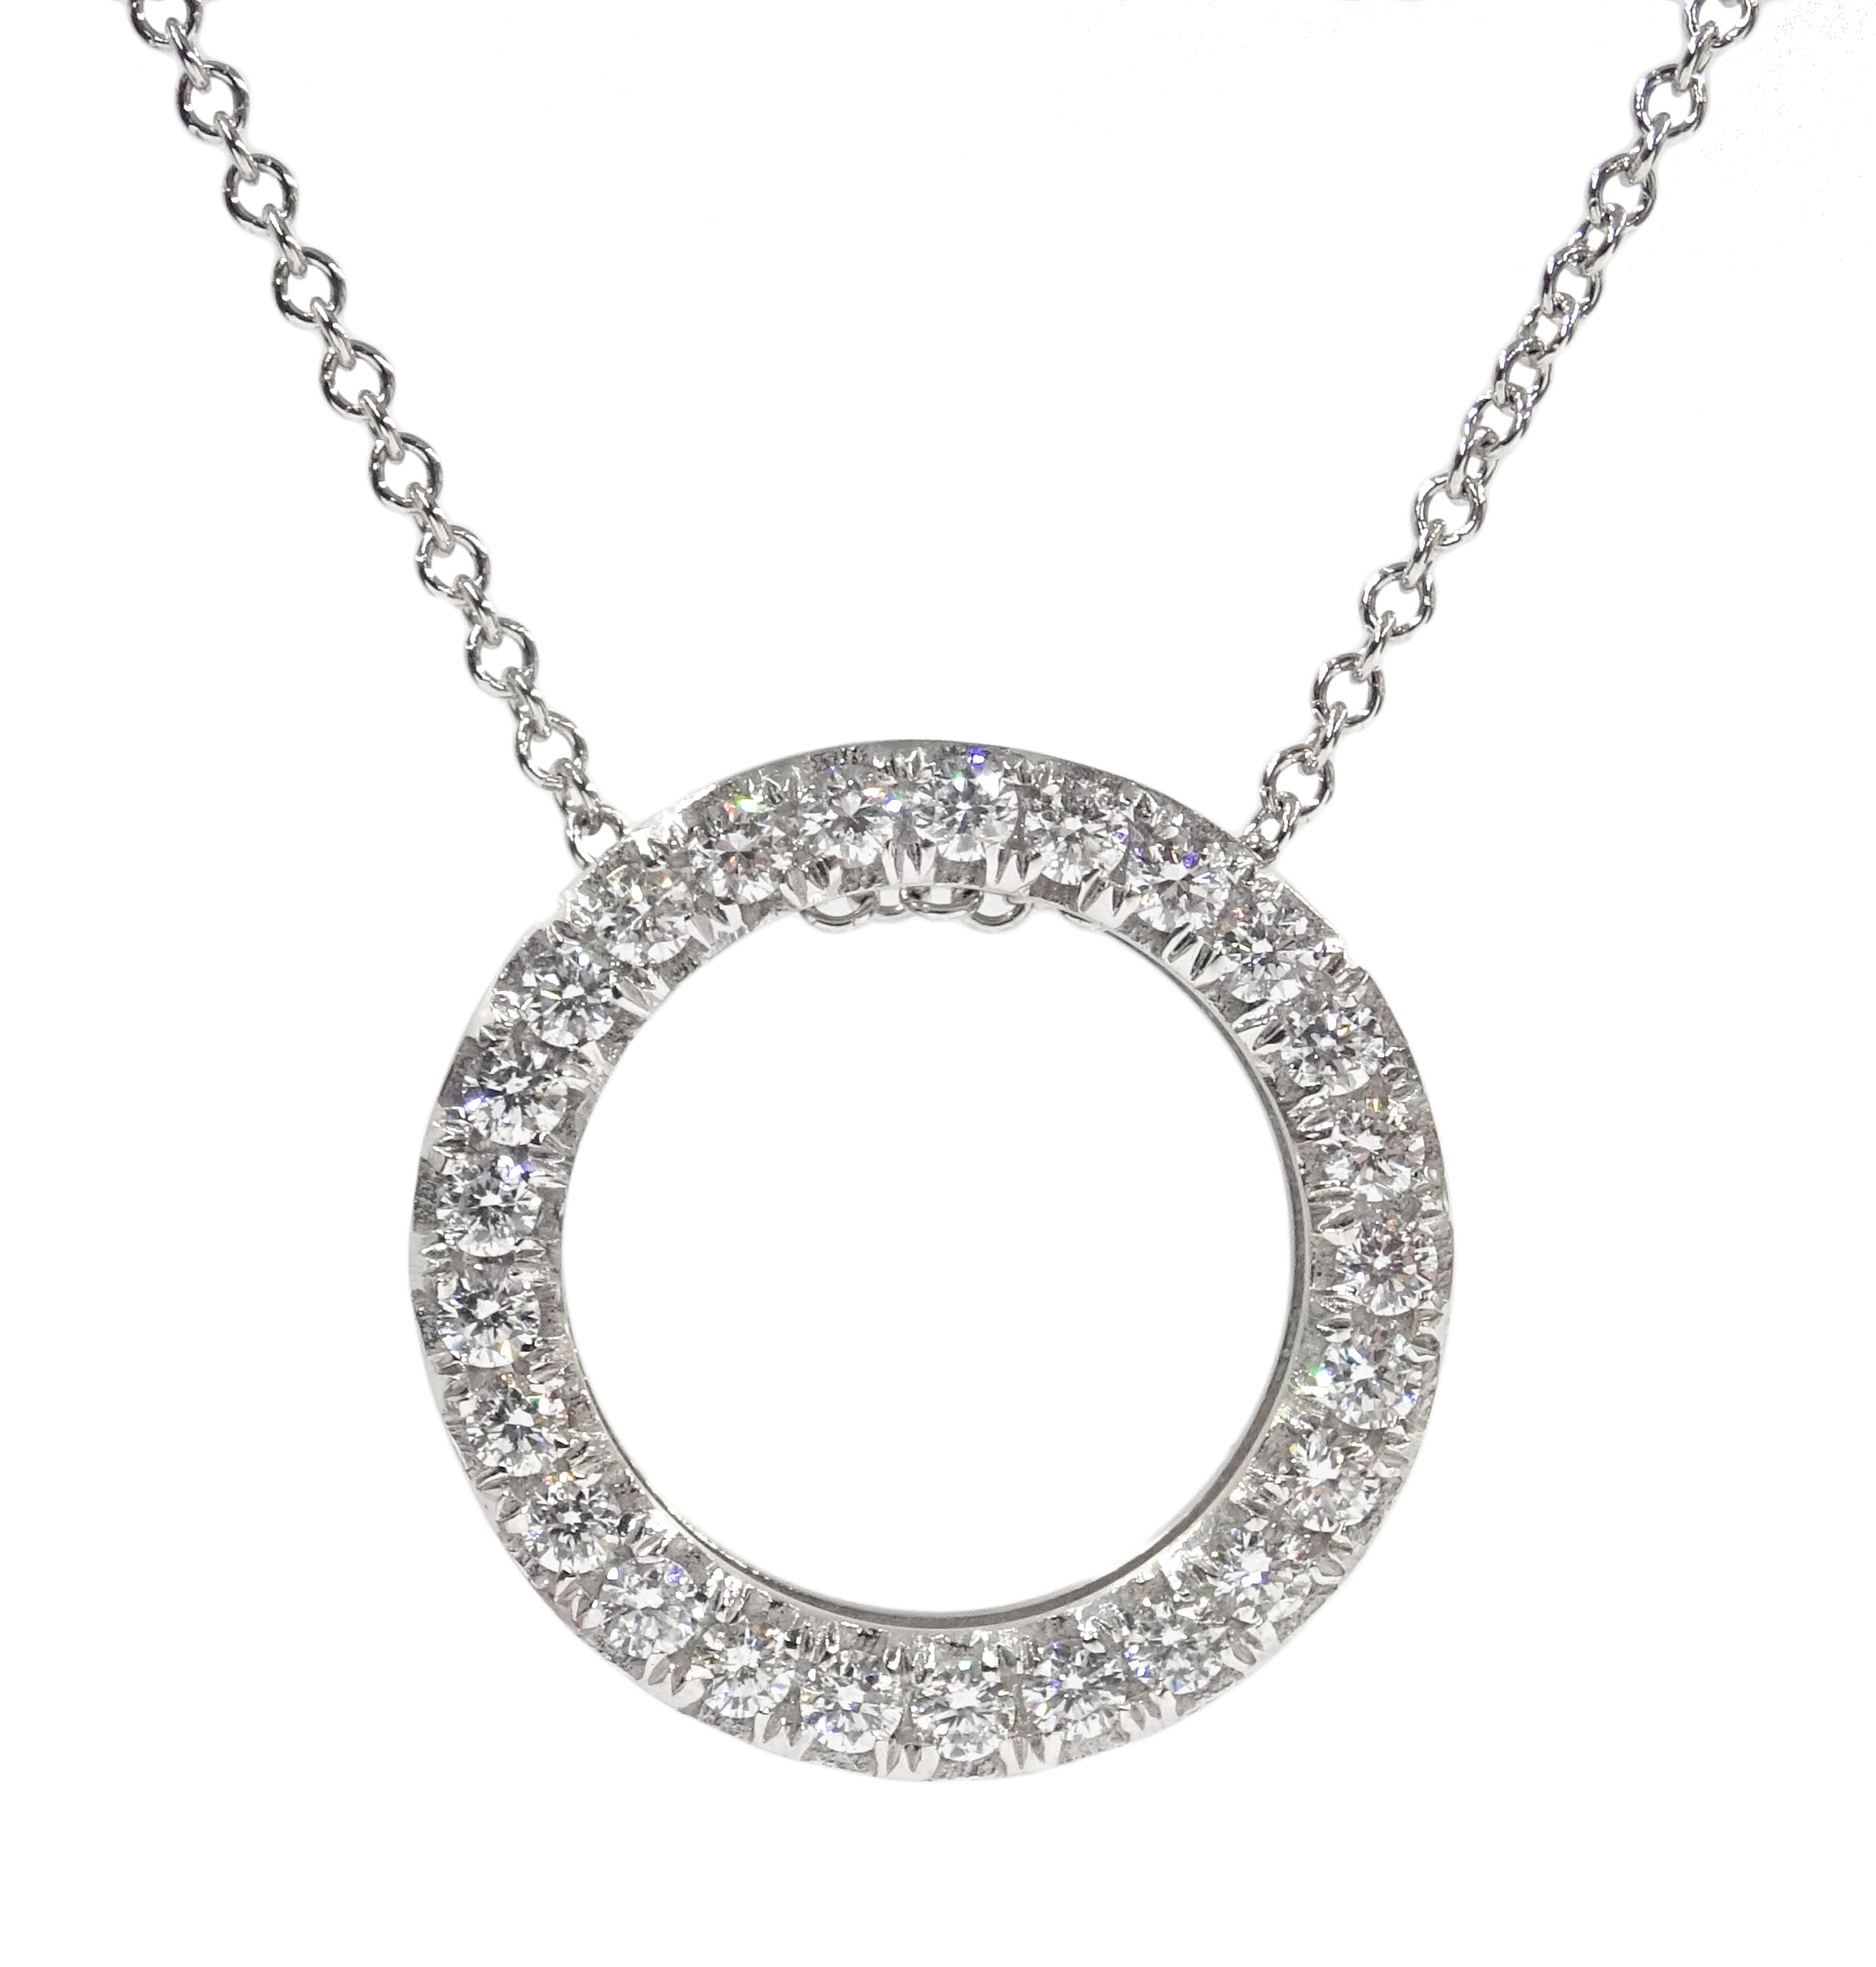 Lot 1042 - 18ct white gold diamond circular pendant necklace, stamped 750, diamond total weight 0.